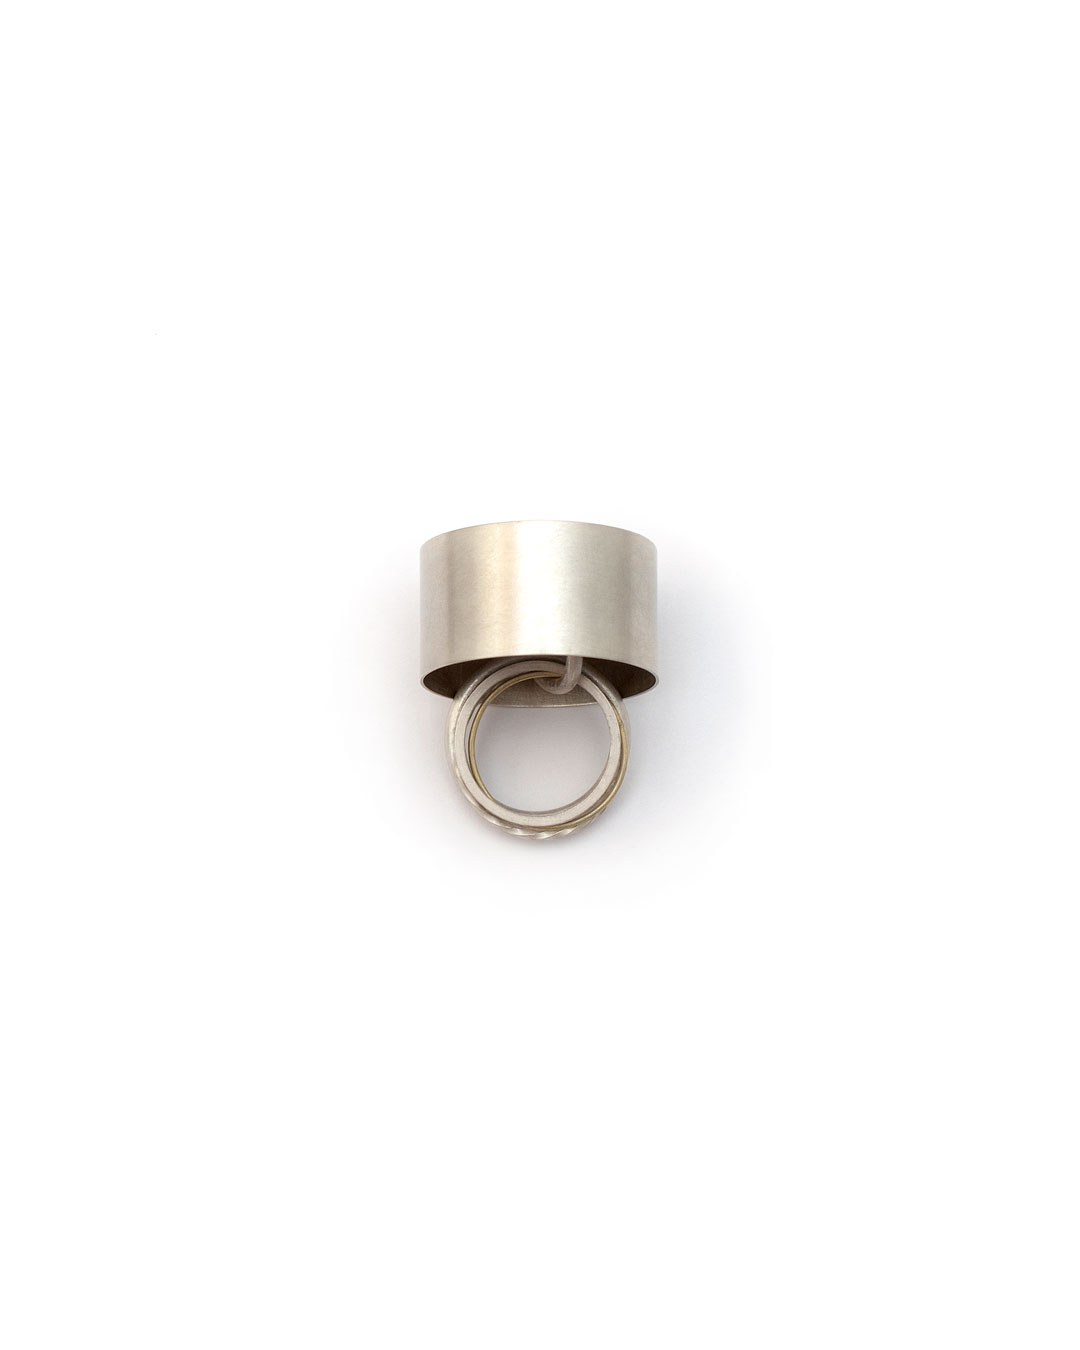 Junwon Jung, untitled (oval, multiple rings), 2016, ring; silver, gold, 25 x 35 x 40 mm, €970